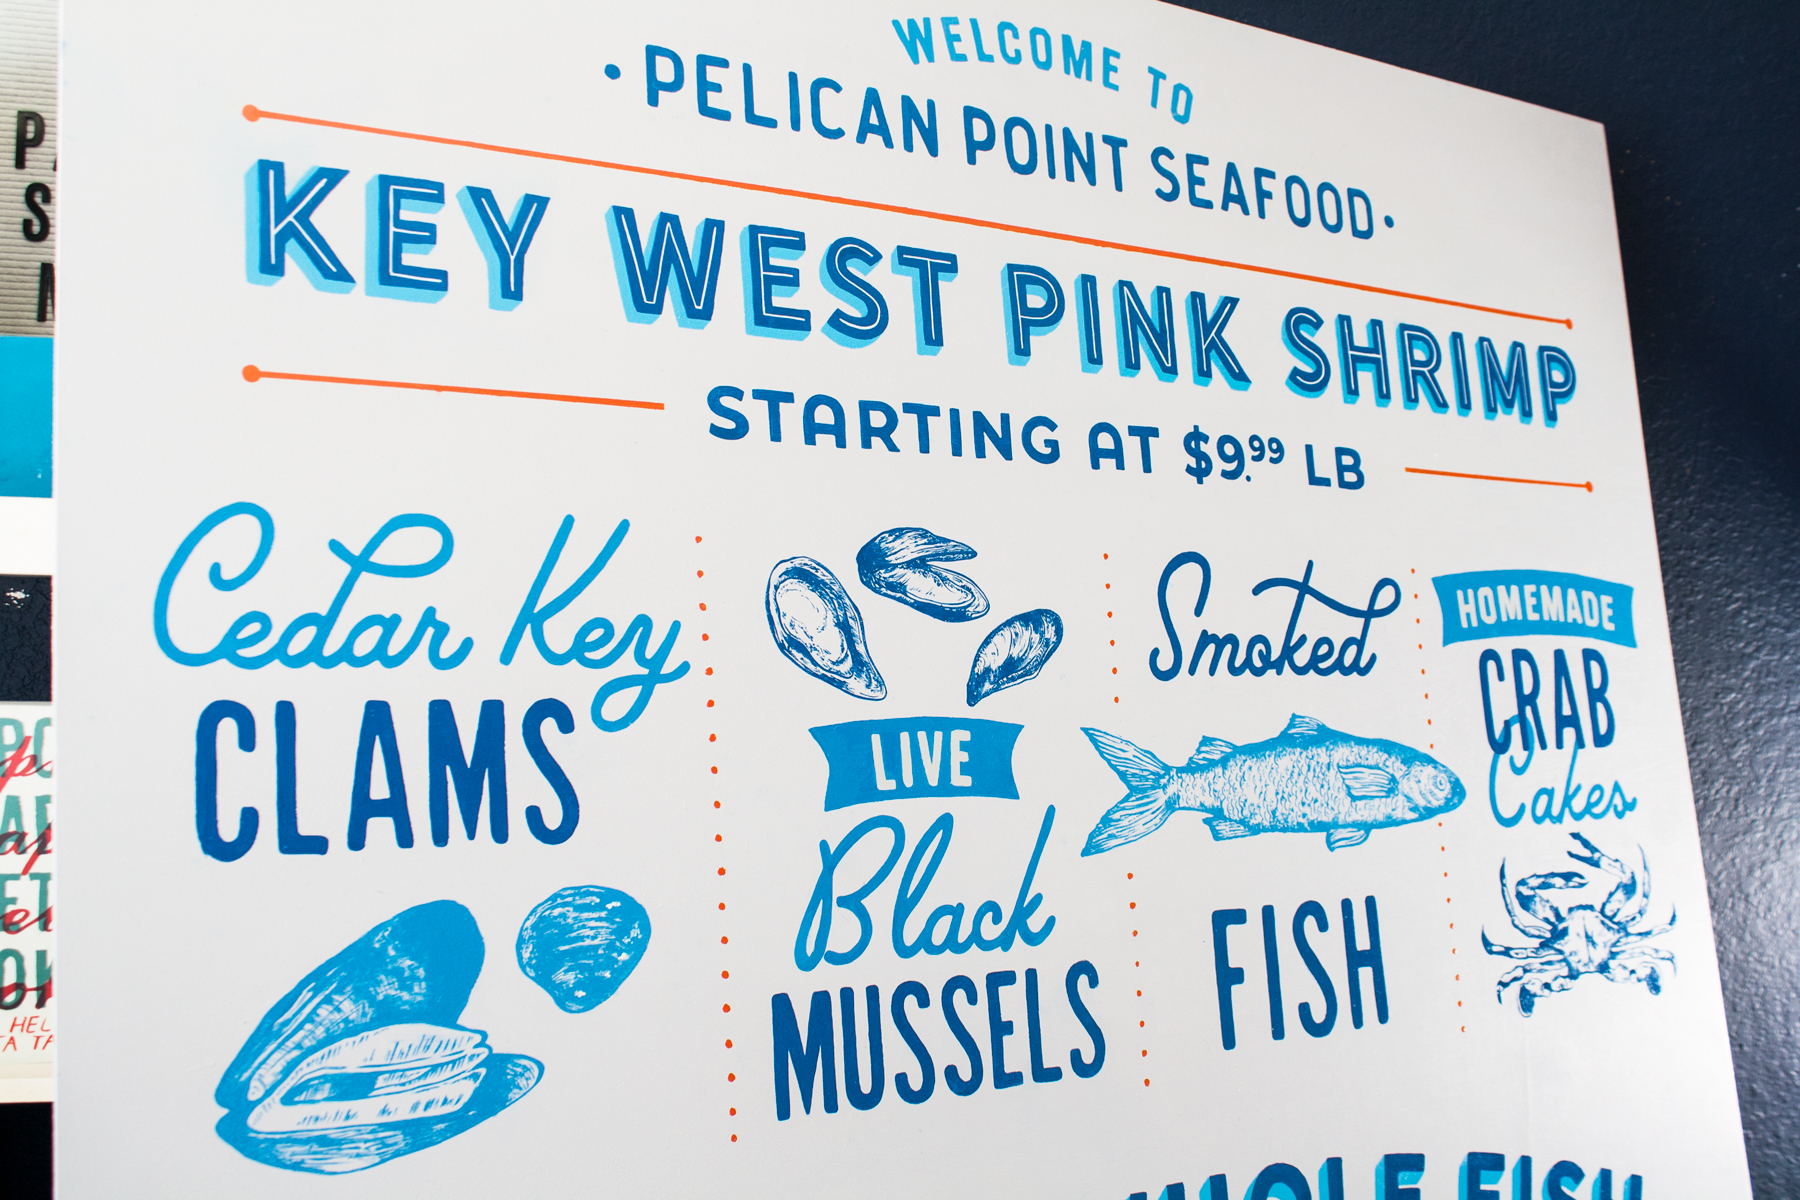 Leo-Gomez-Studio-Pelican-Point-Food-Sign-03.jpg